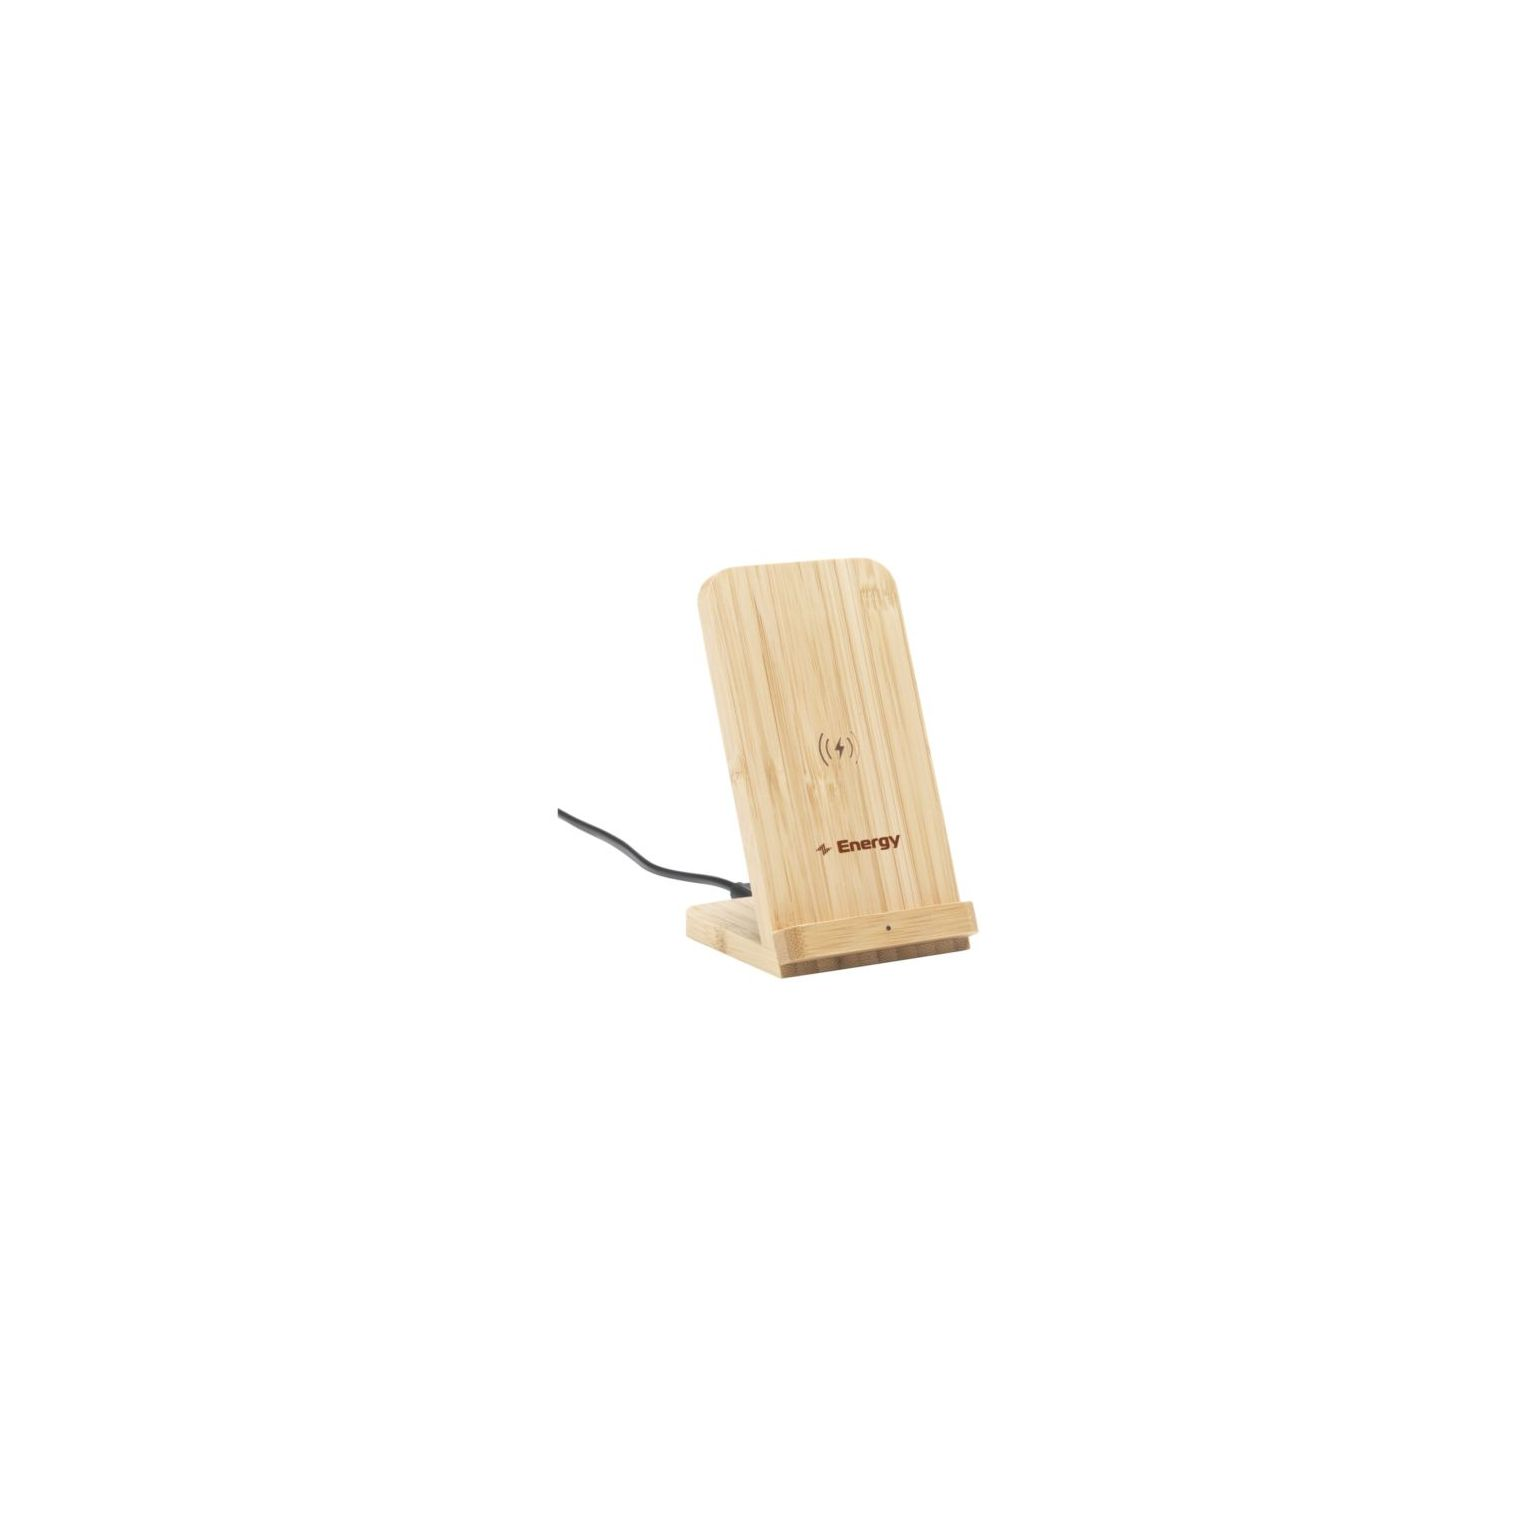 Baloo 10W support pour charge sans fil